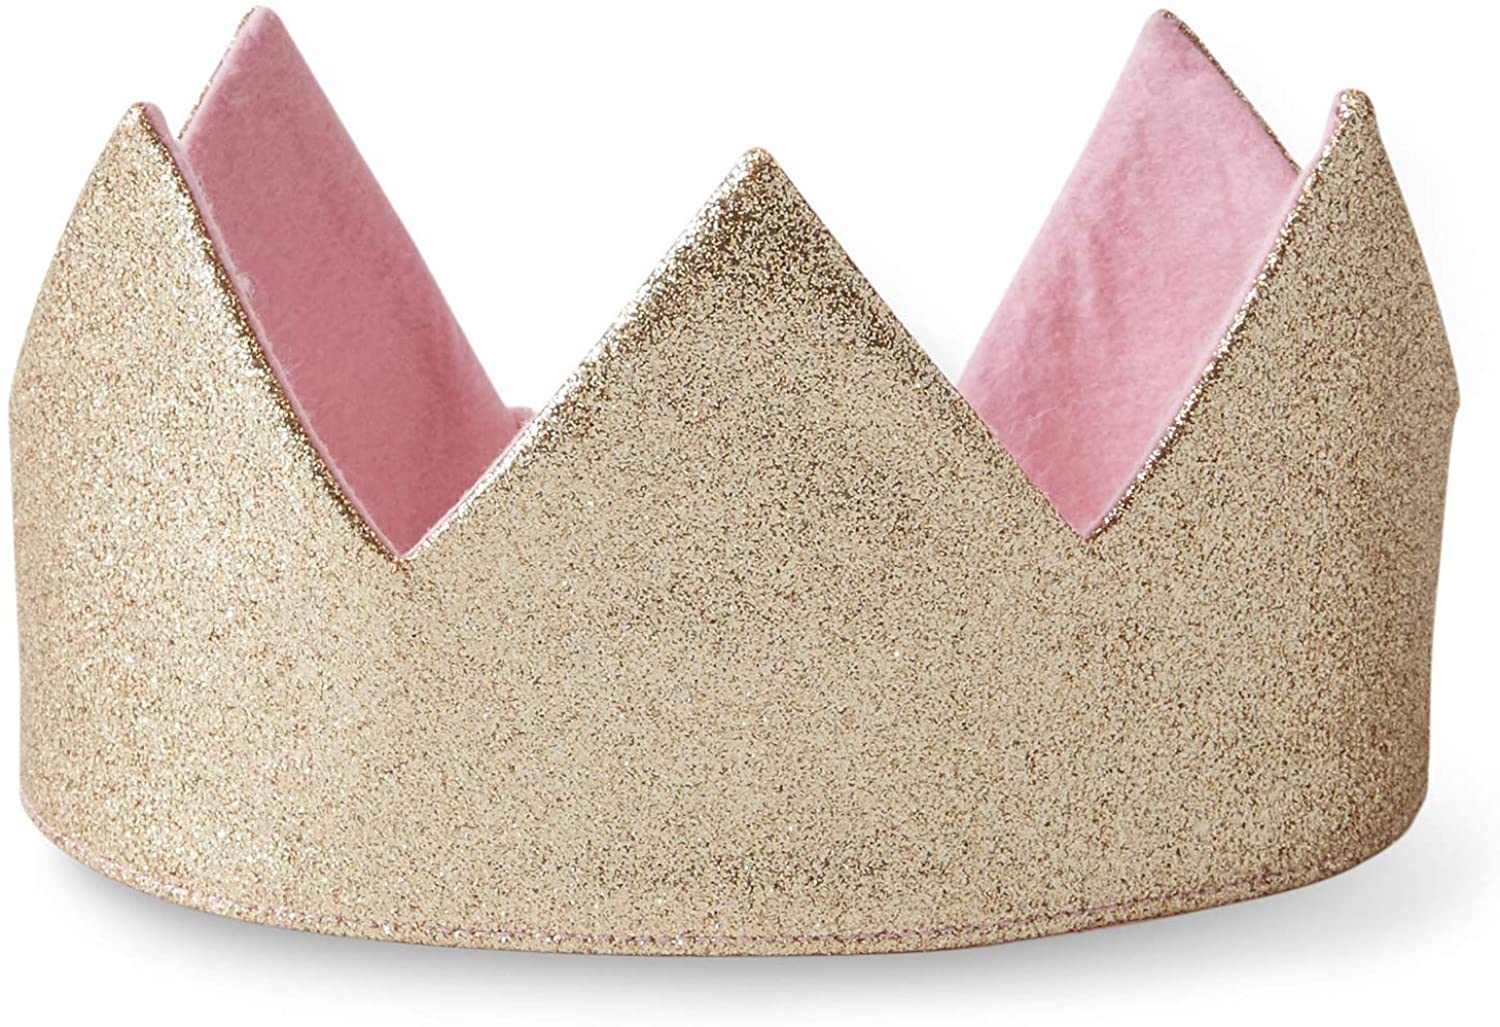 Hanna Andersson Crown Costume Fairy Pink - One Size